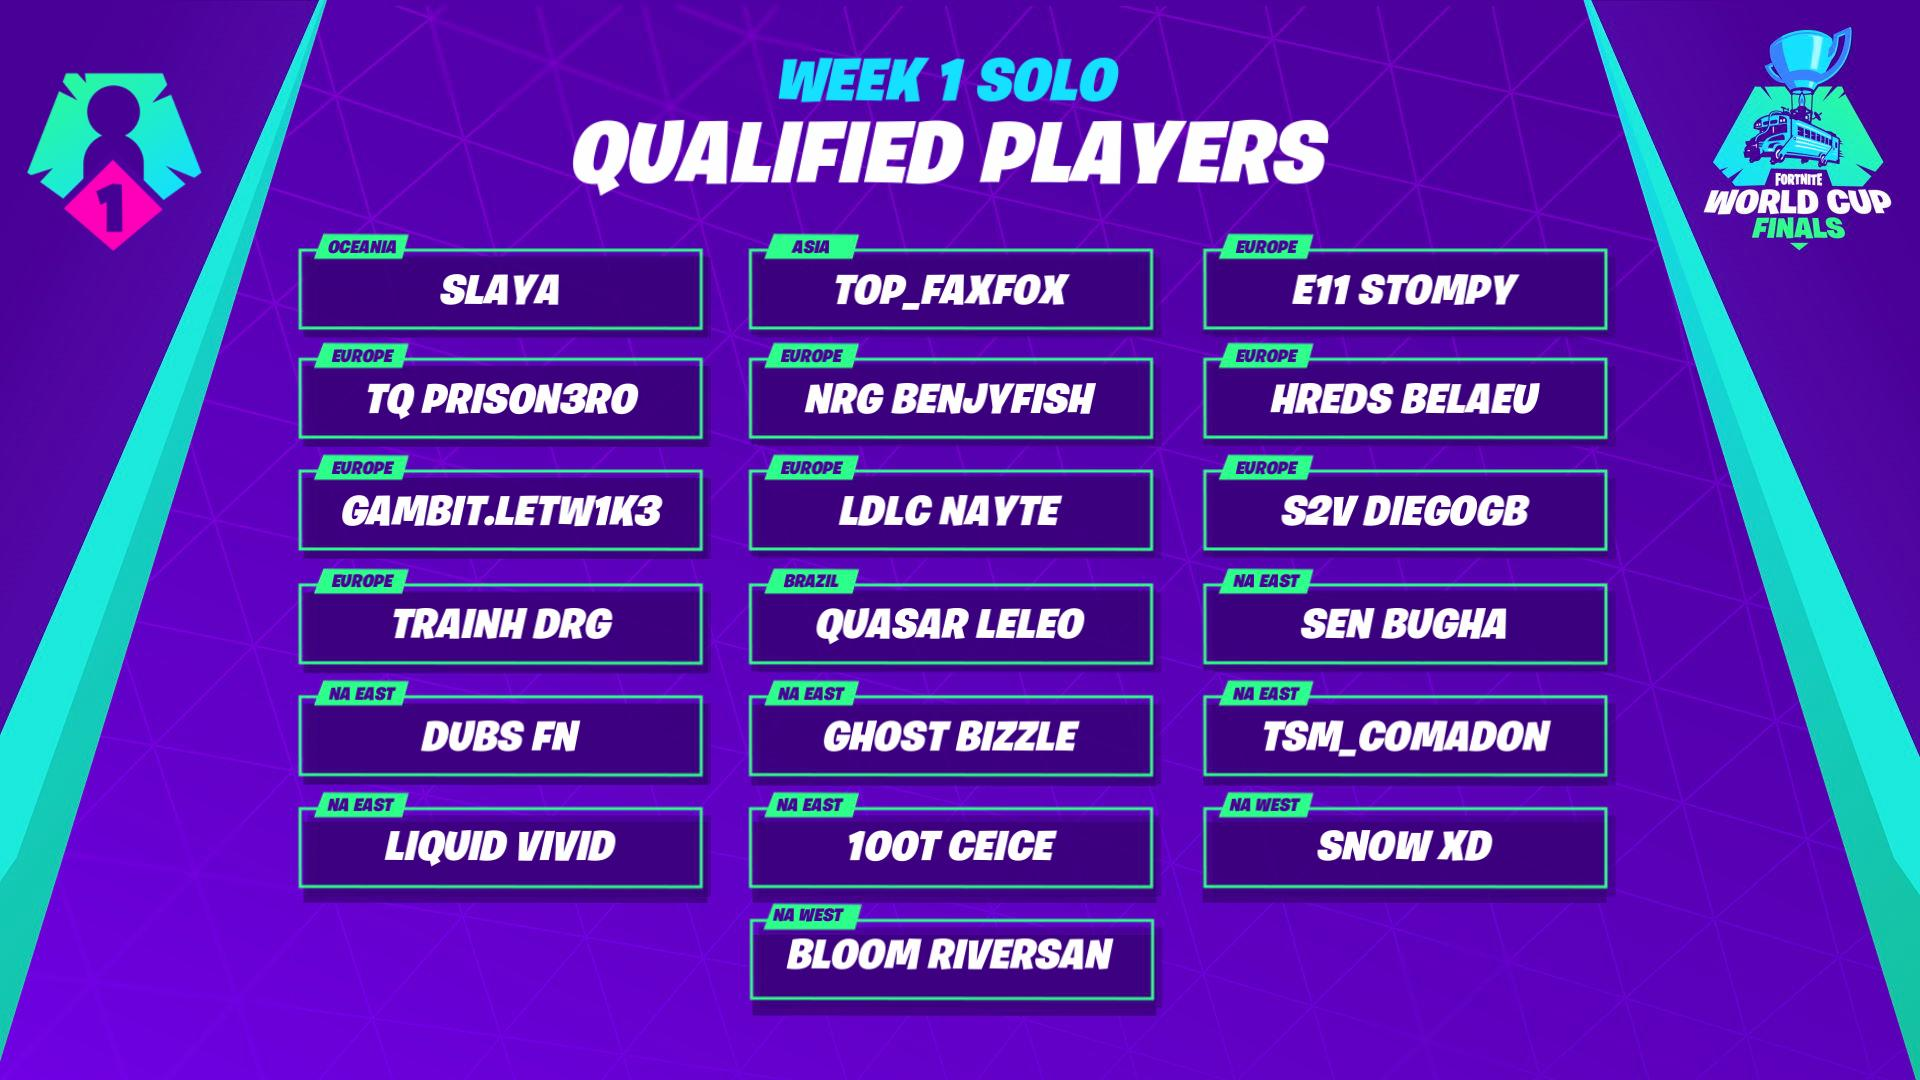 Fortnite On Twitter A Big Congratulations To Our Fortnite World Cup Qualifiers From Week 1 We Re Excited To See You In Ny